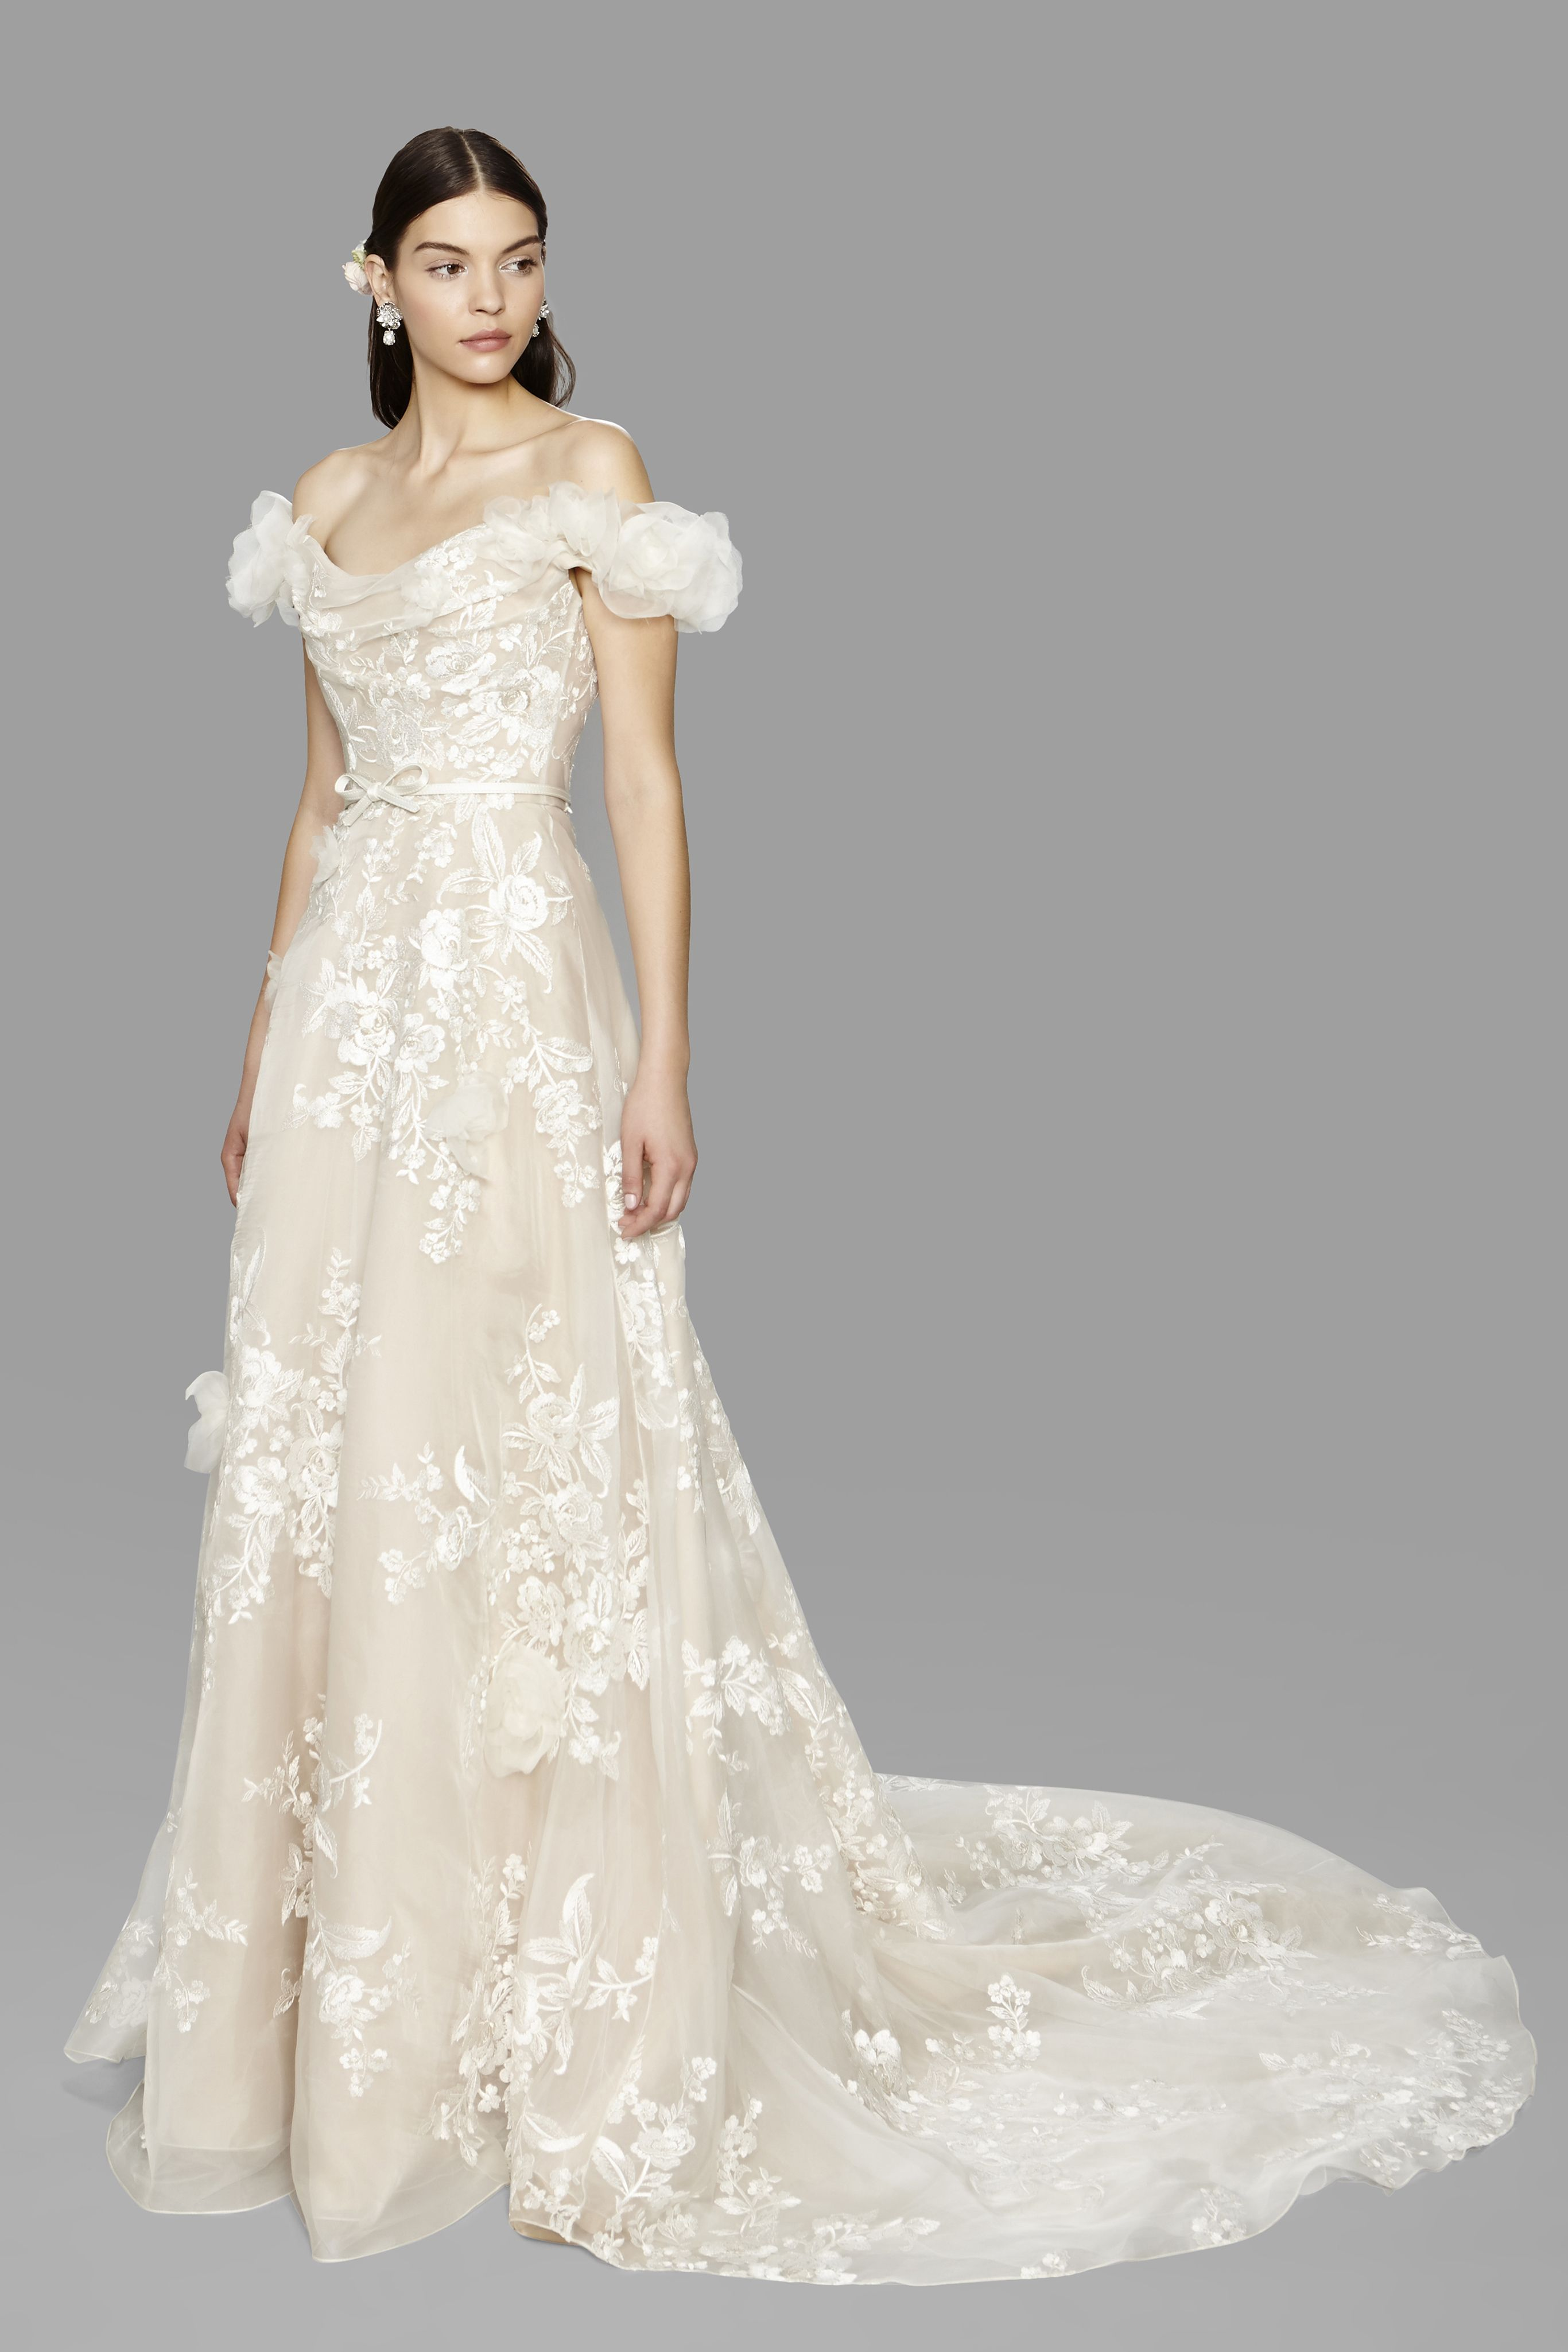 These are the prettiest wedding dresses from fall 2017 bridal week these are the prettiest wedding dresses from fall 2017 bridal week ombrellifo Choice Image